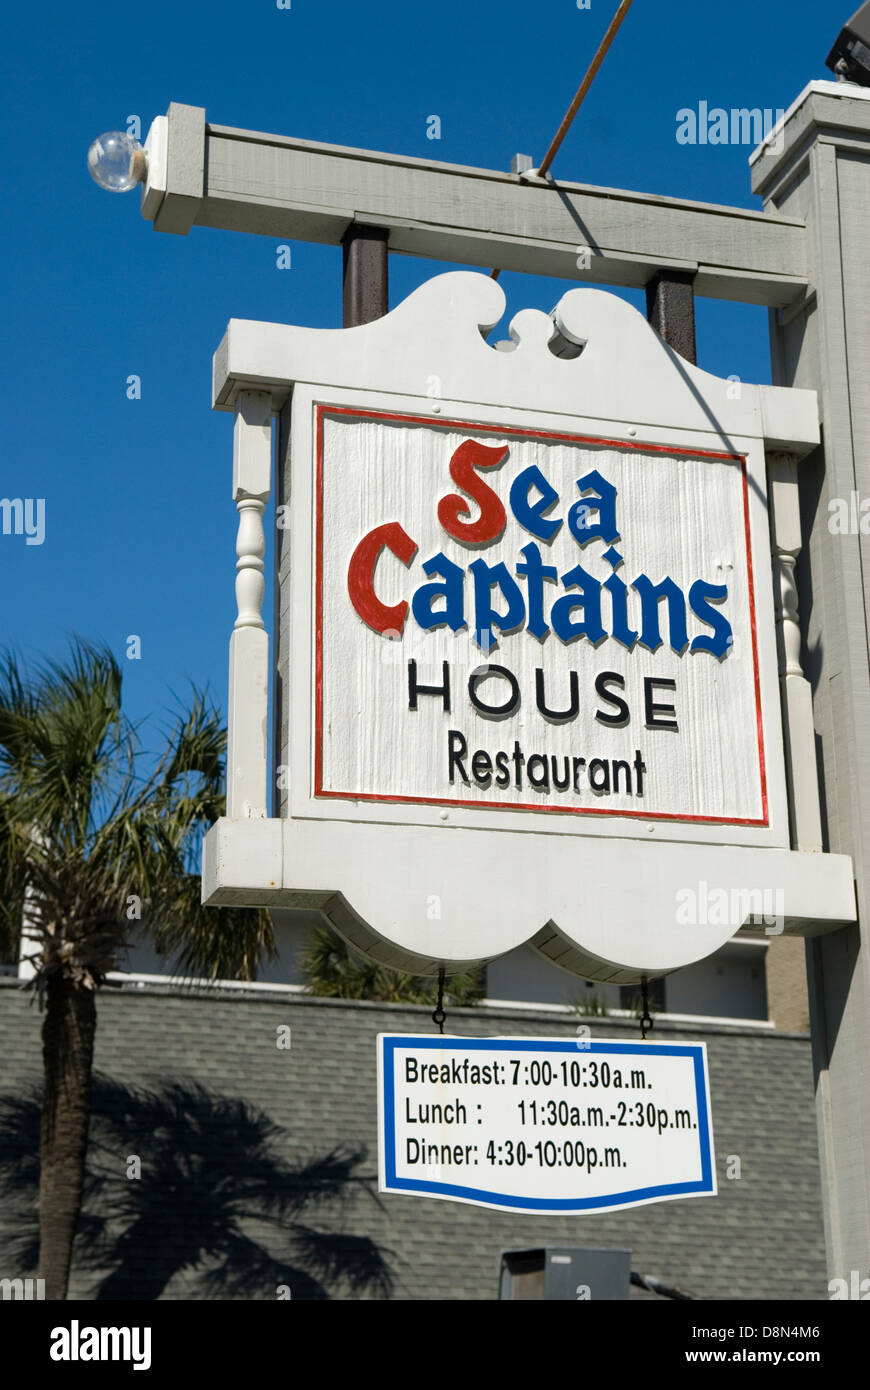 Best Rated Seafood Restaurant In Myrtle Beach